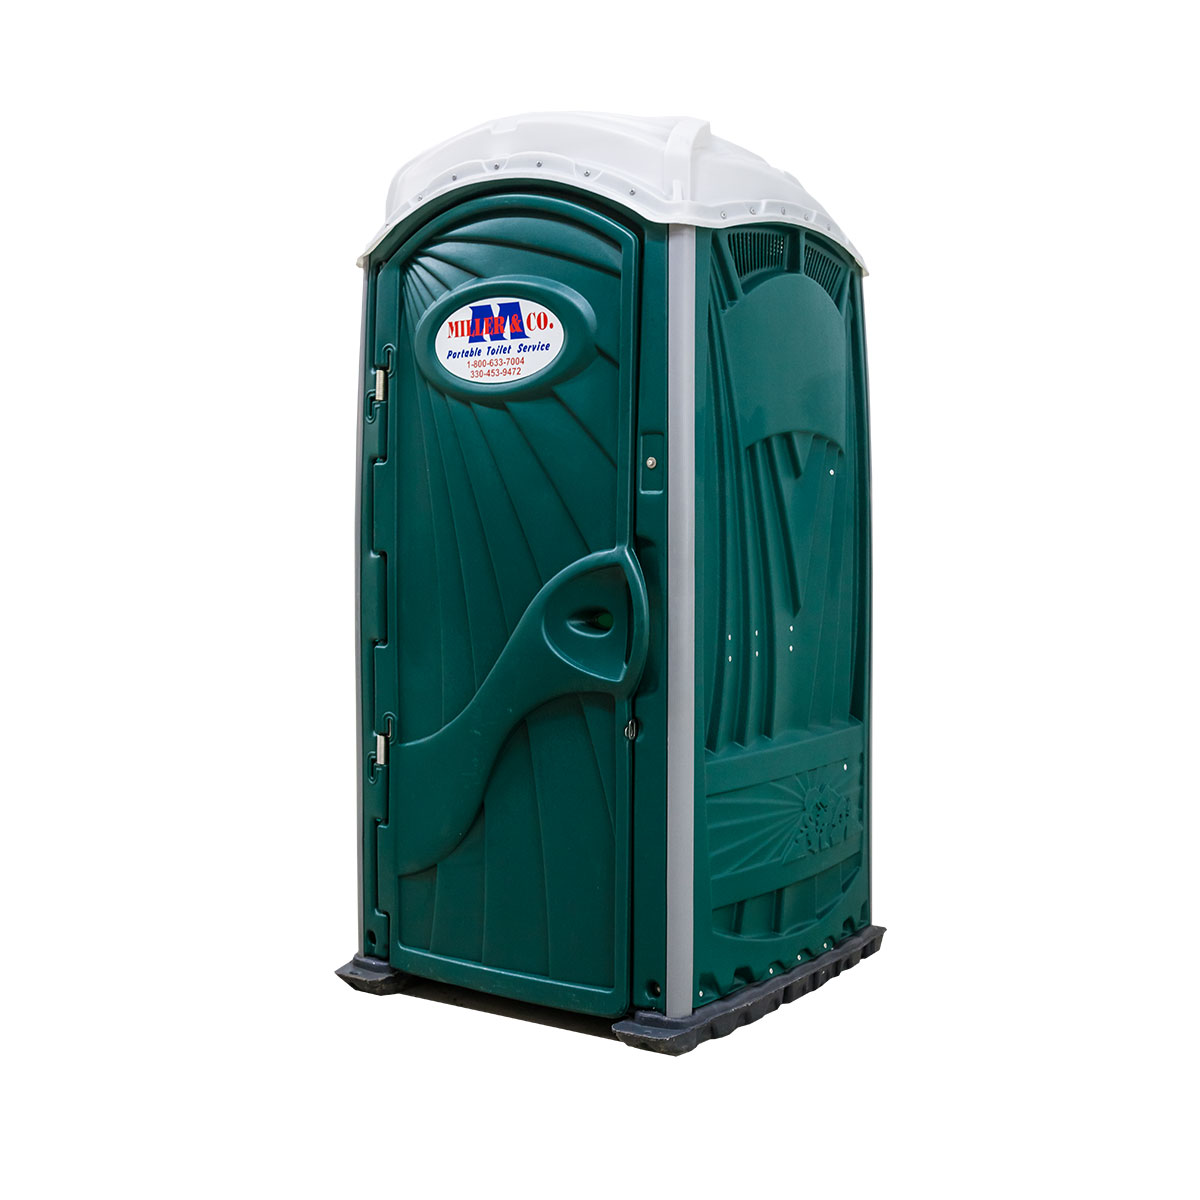 approved toilet rental. porta john rental ohio approved toilet l